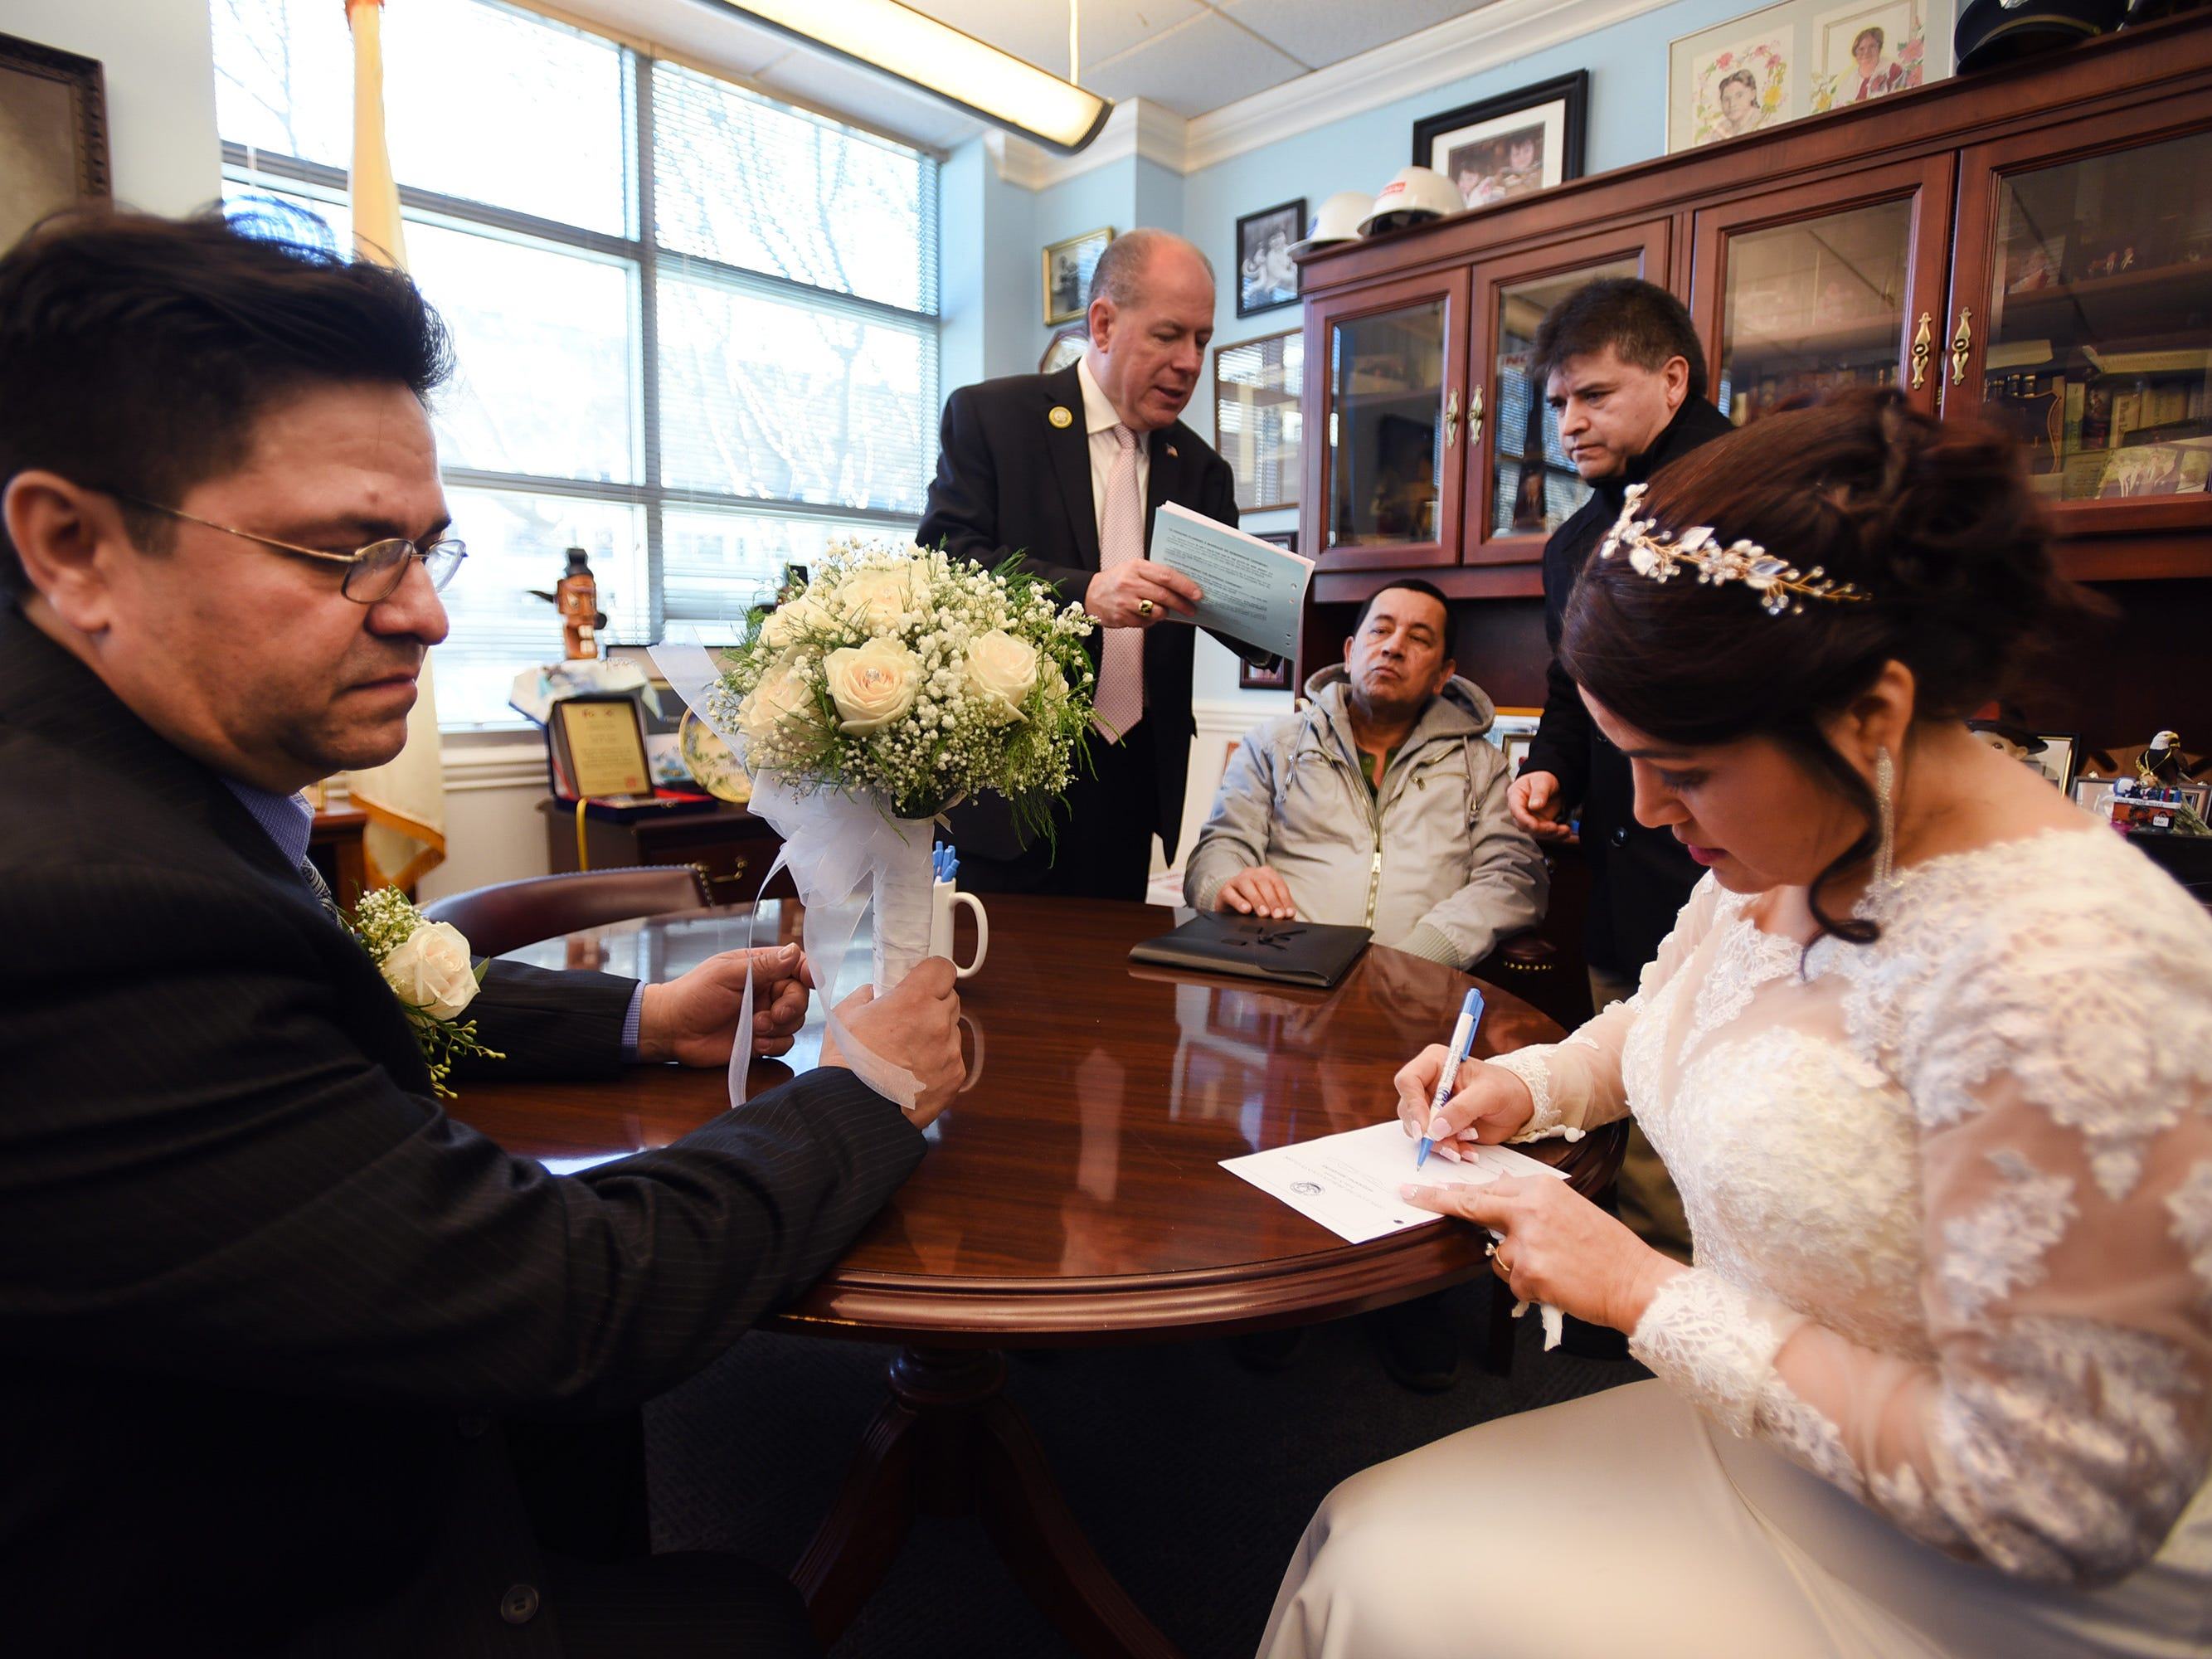 Gloria Gallego and Alexander Gutierrez of Englewood, sign  for their marriage certificate as Bergen County Clerk John S. Hogan explains to their witnesses in Hogan's office at Bergen County Clerk's Office prior to their wedding ceremony, located at Bergen County Plaza in Hackensack on 02/14/19.